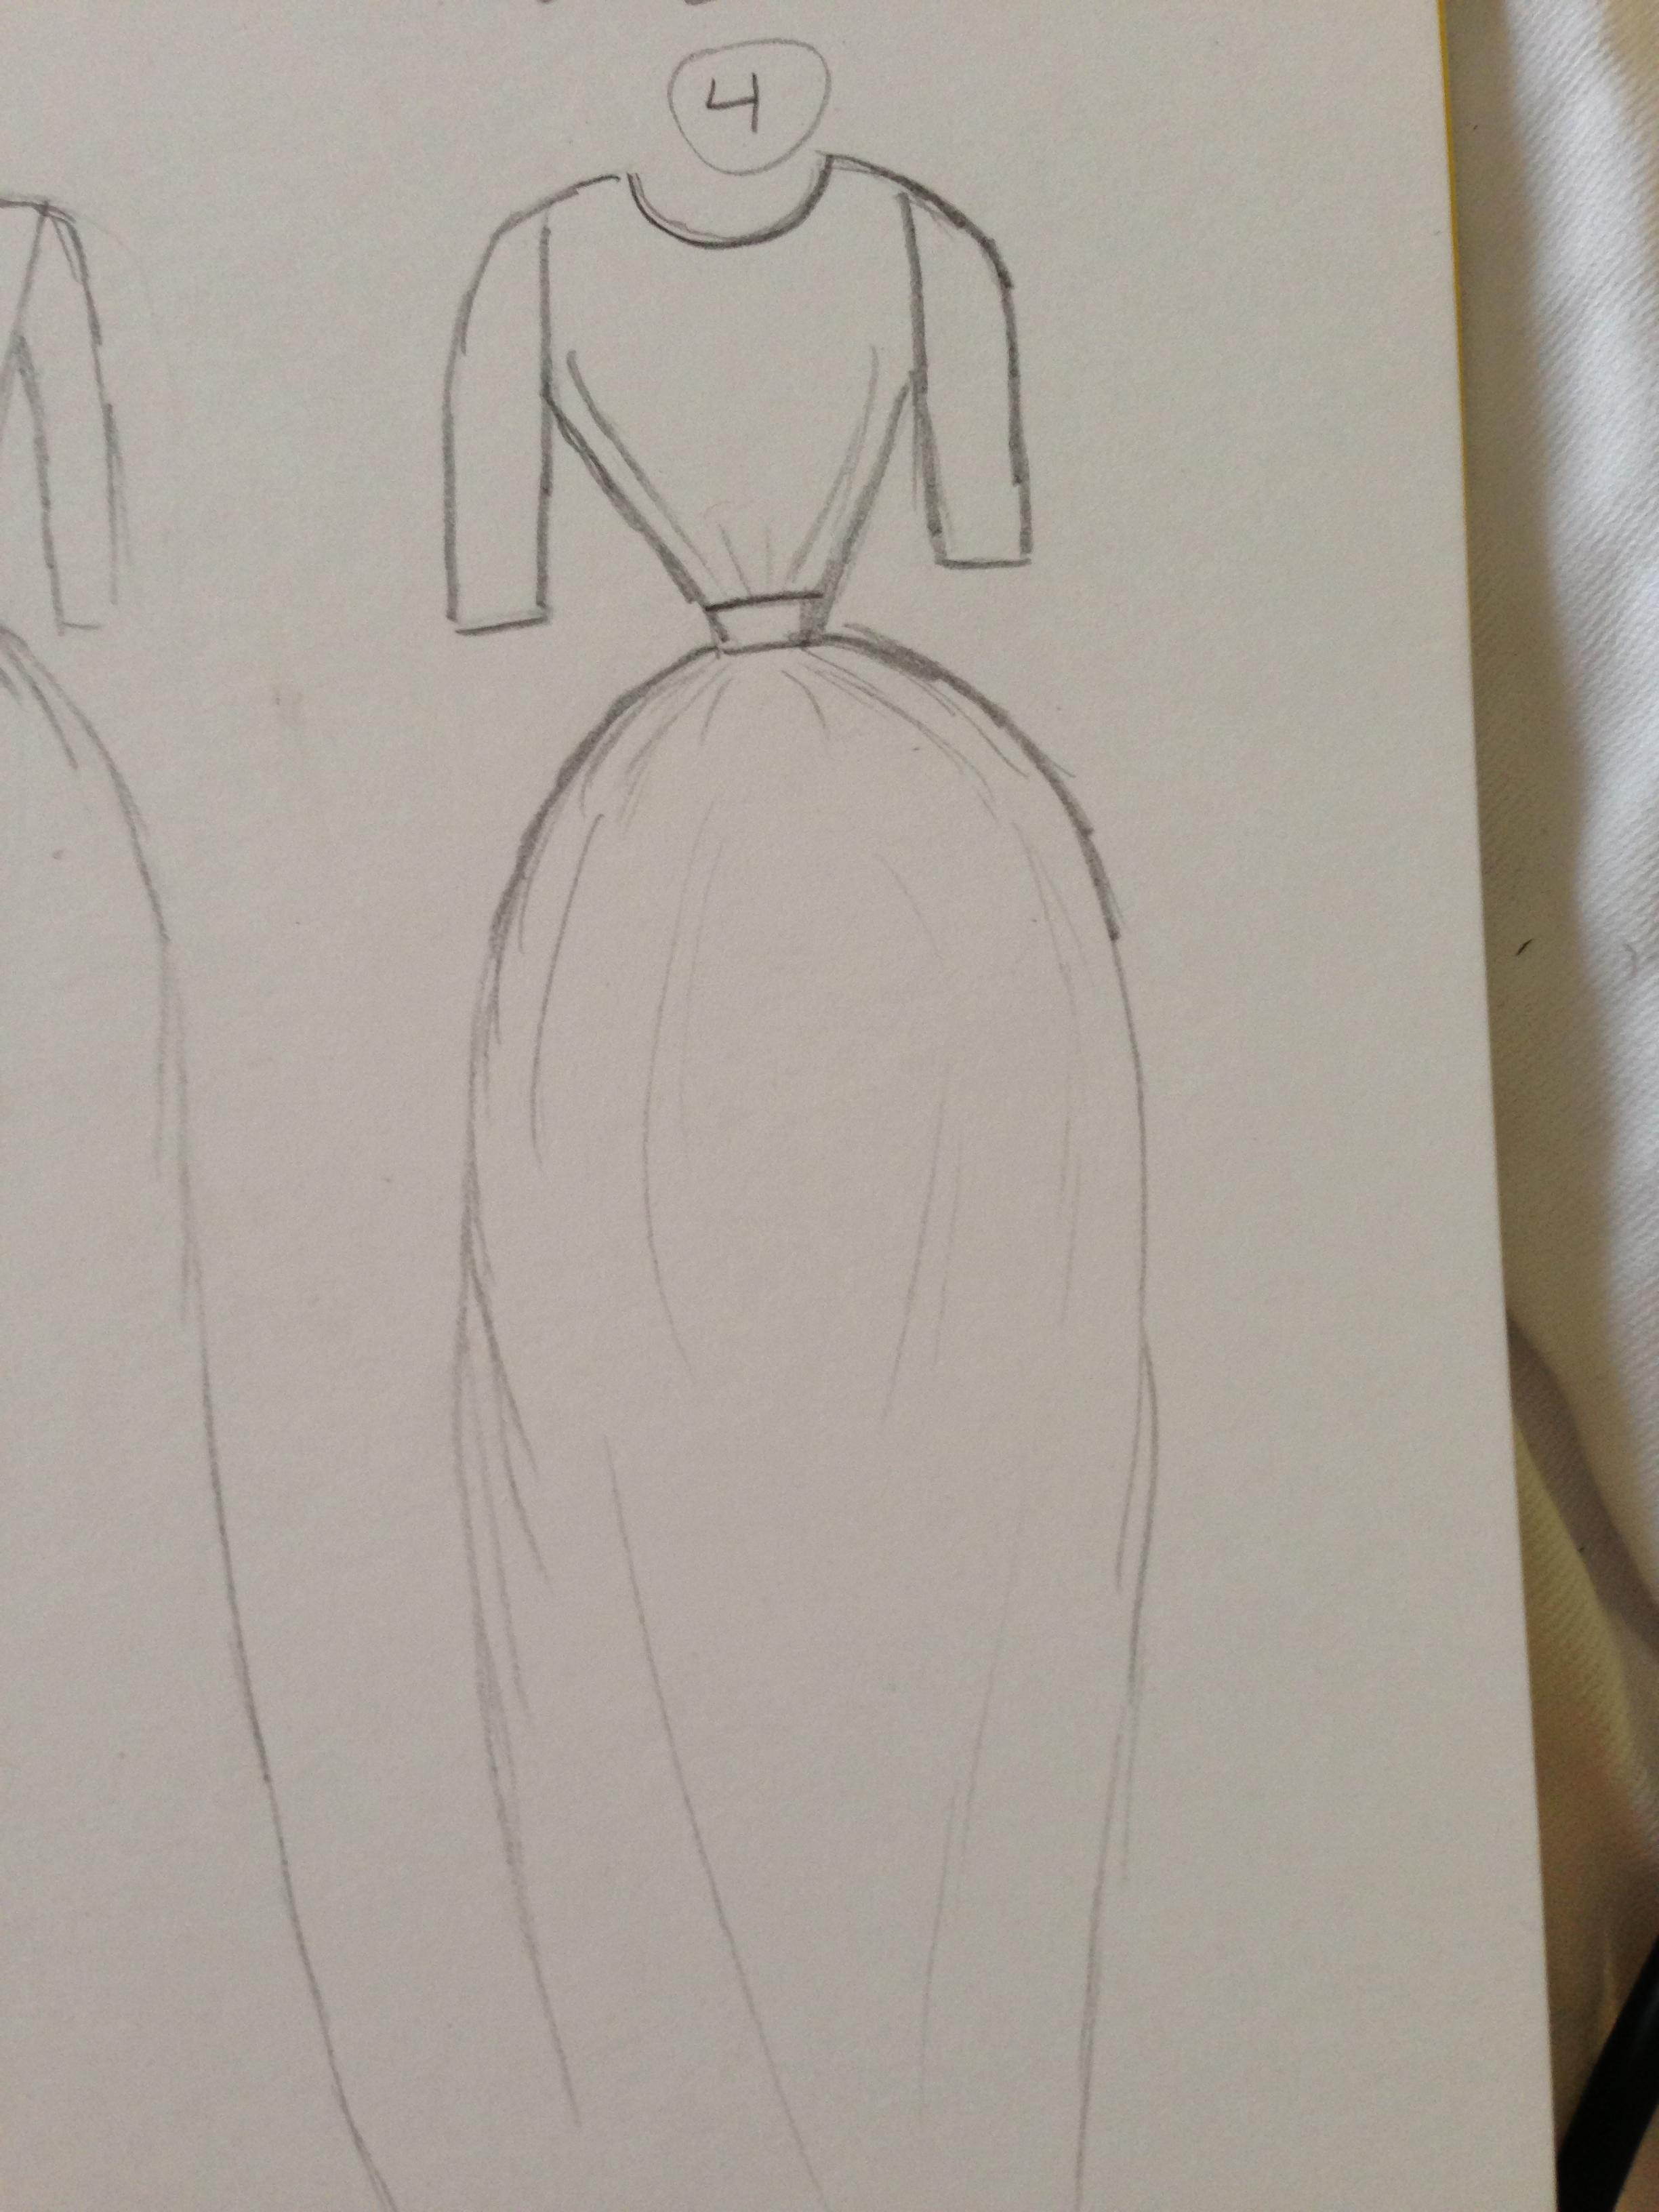 WATERCOLOR -- Dresses that Inspire - image 11 - student project